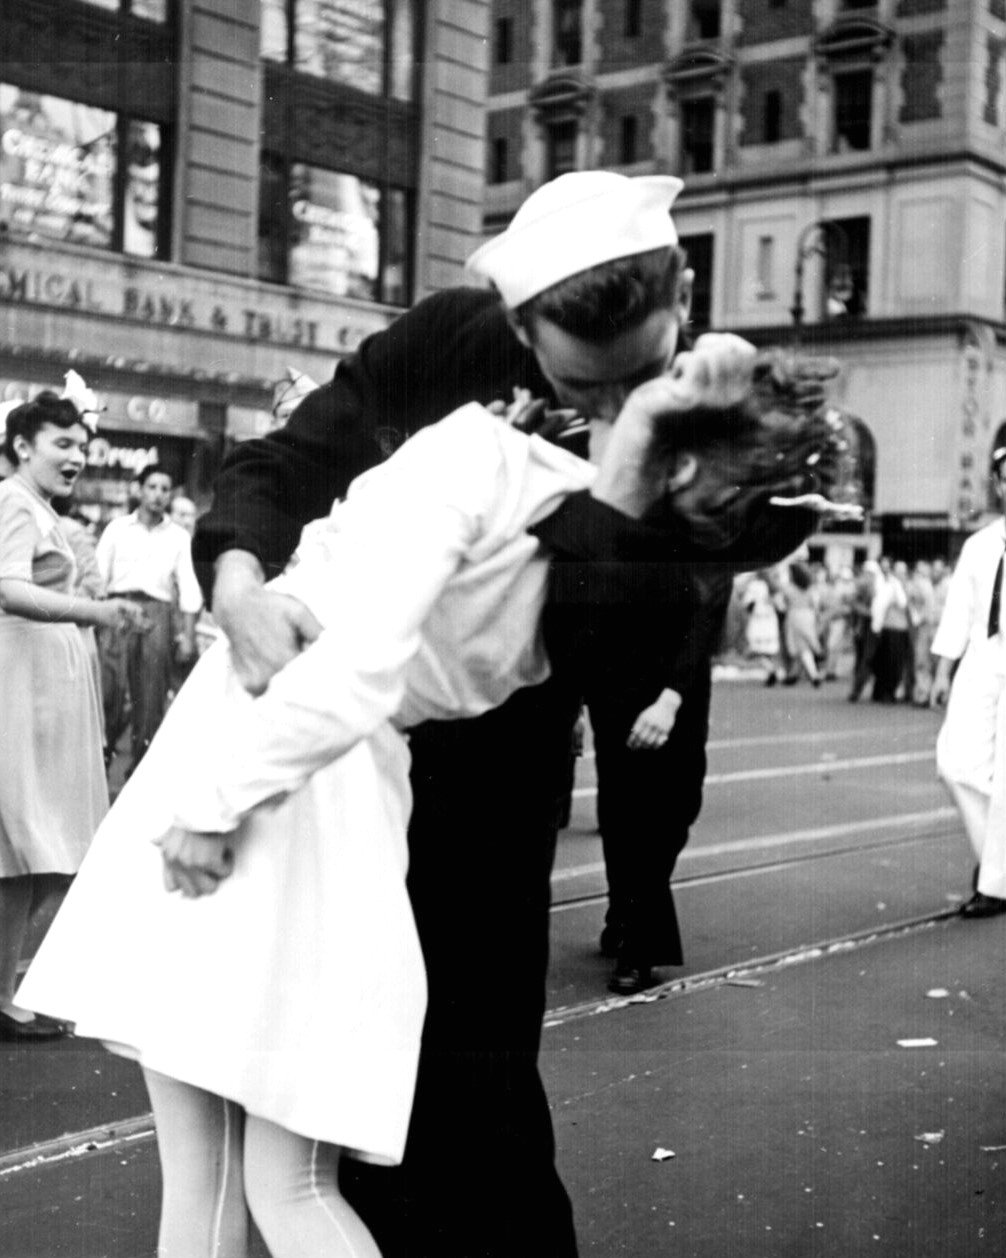 SOLDIER CELEBRATES END OF WWII KISSING GIRL IN TIMES SQUARE 8X10 PHOTO (AA-534)